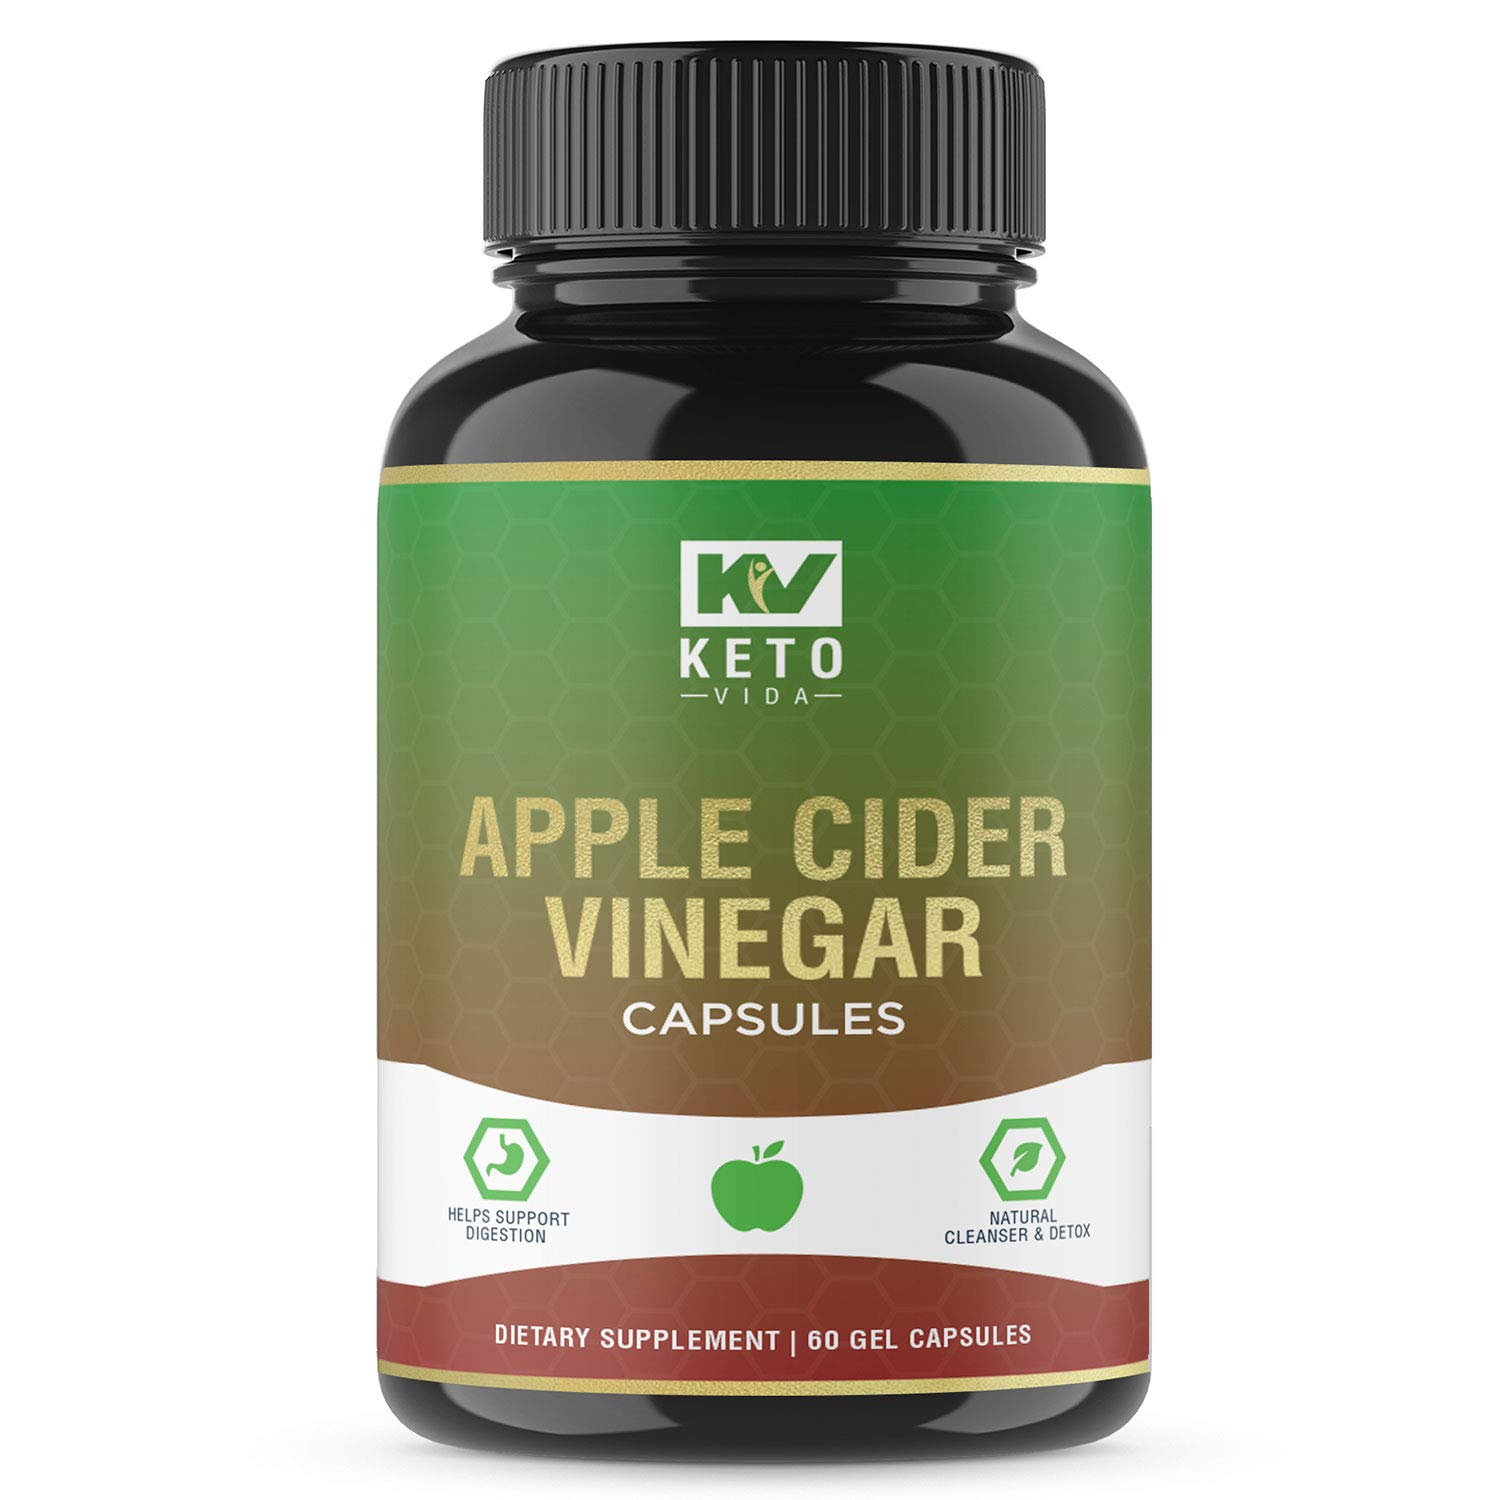 Apple Cider Vinegar Pills - Natural Detox and Weight Loss for Women and Men, Effective Cleanse to Help Digestion and Bloating Relief, Organic Extra Strength ACV Capsules by Keto Vida (Image #1)